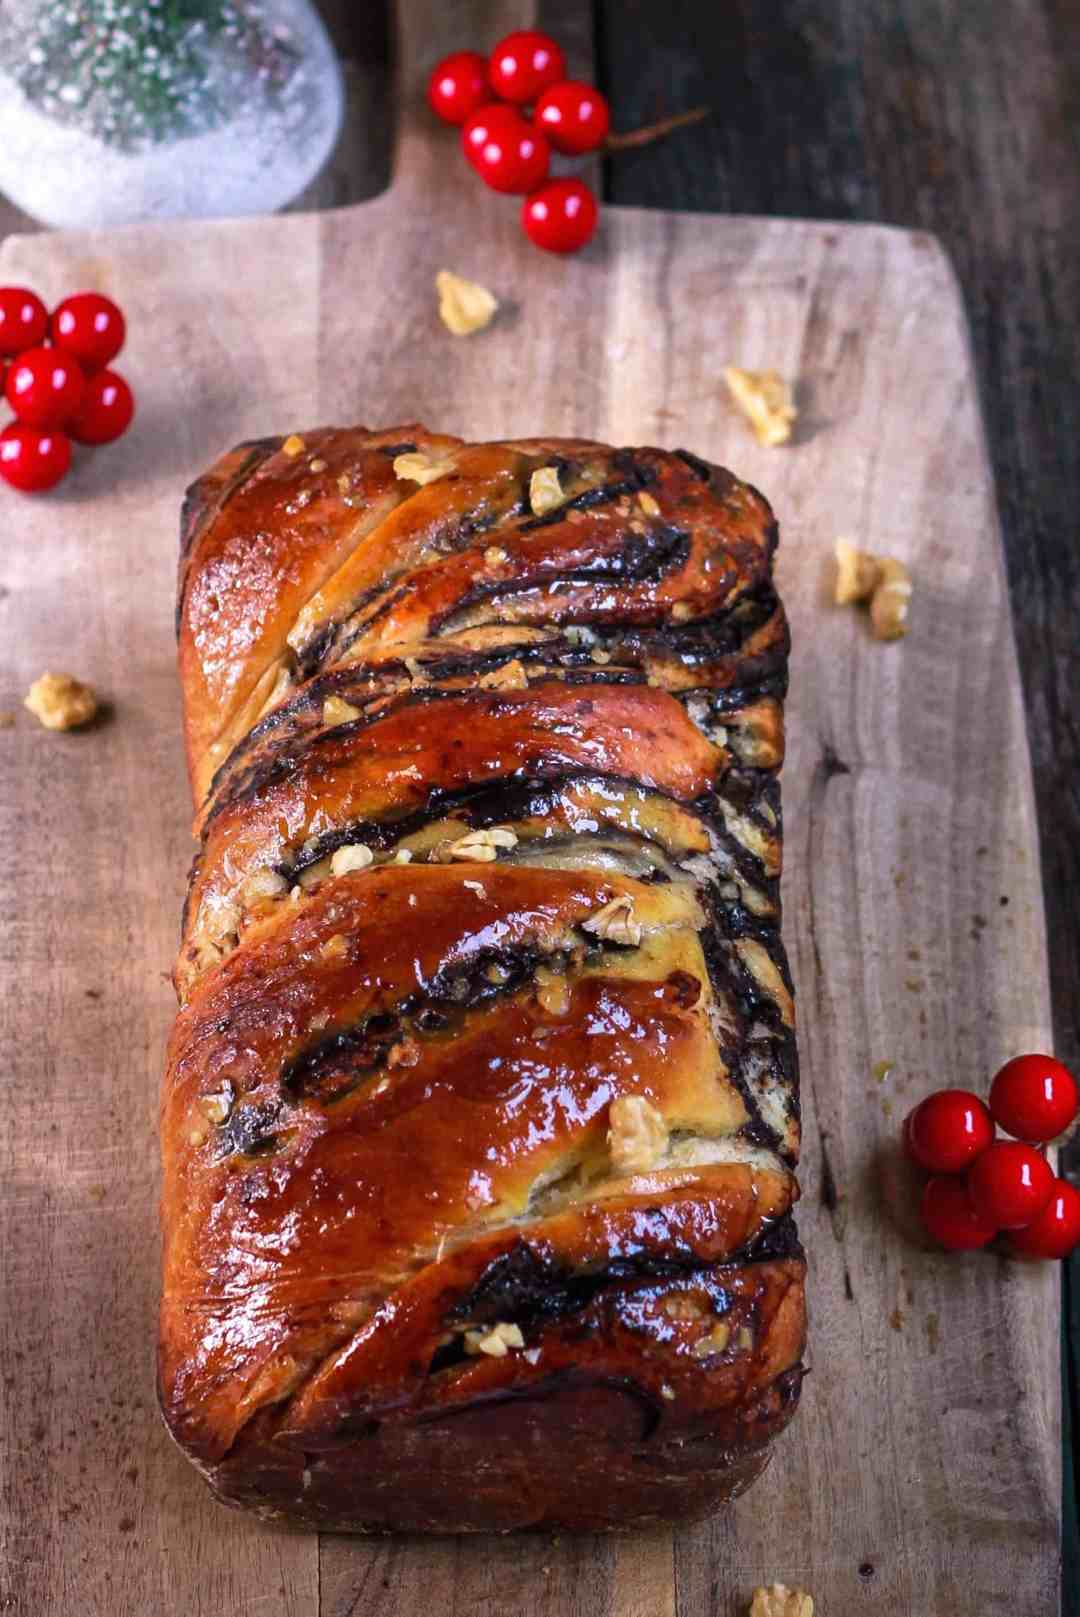 Chocolate Babka dessert Krantz Cake baking bread